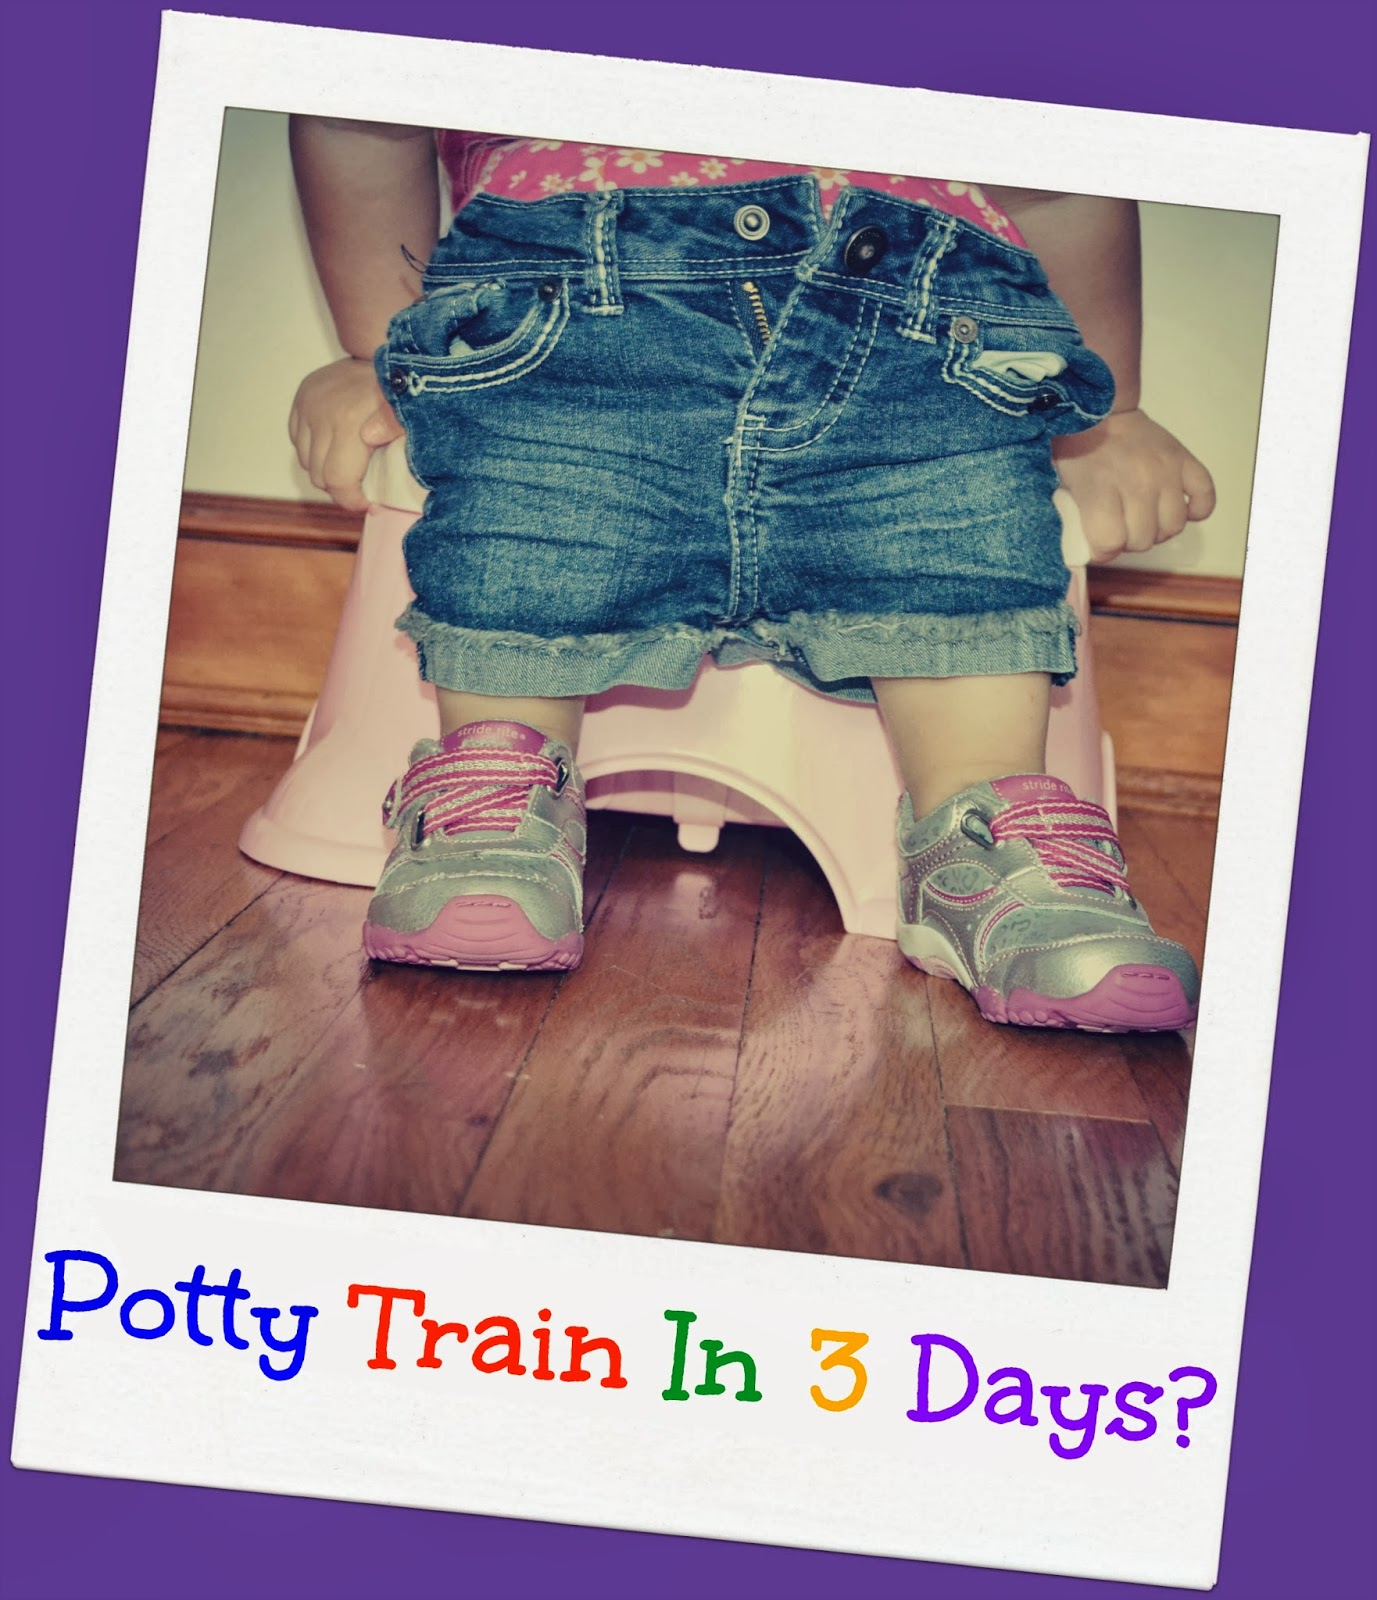 3 day potty training, potty training tips, potty training in 3 days, potty training, how to potty train boys, potty train in 3 days, potty training boys, potty training help, how to potty train